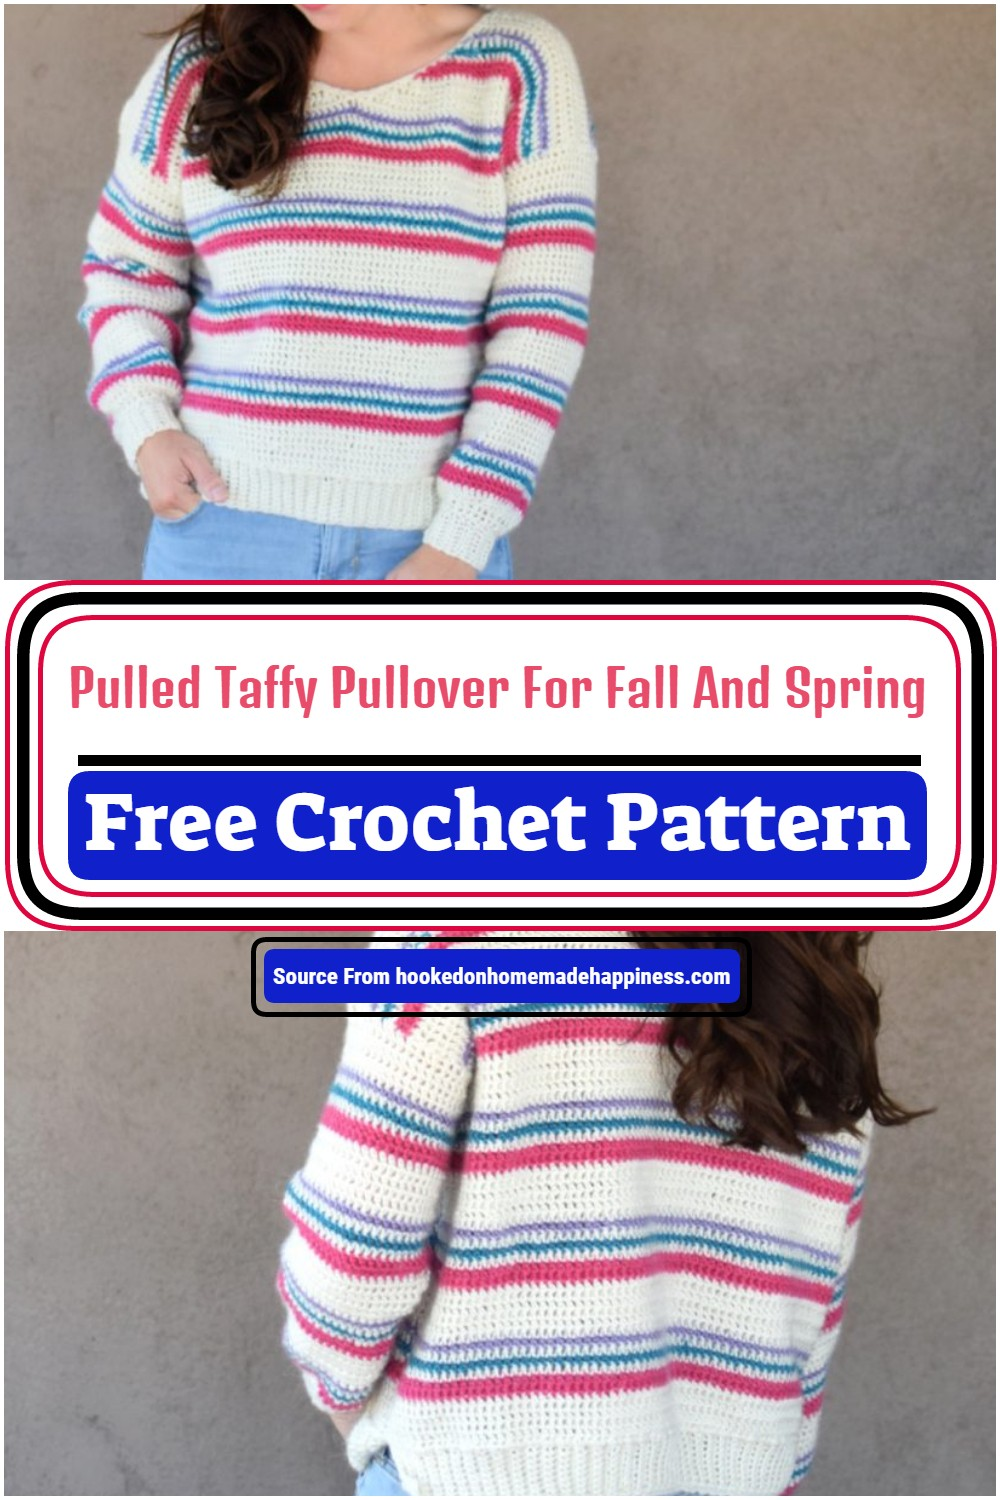 Pulled Taffy Crochet Pullover For Fall And Spring